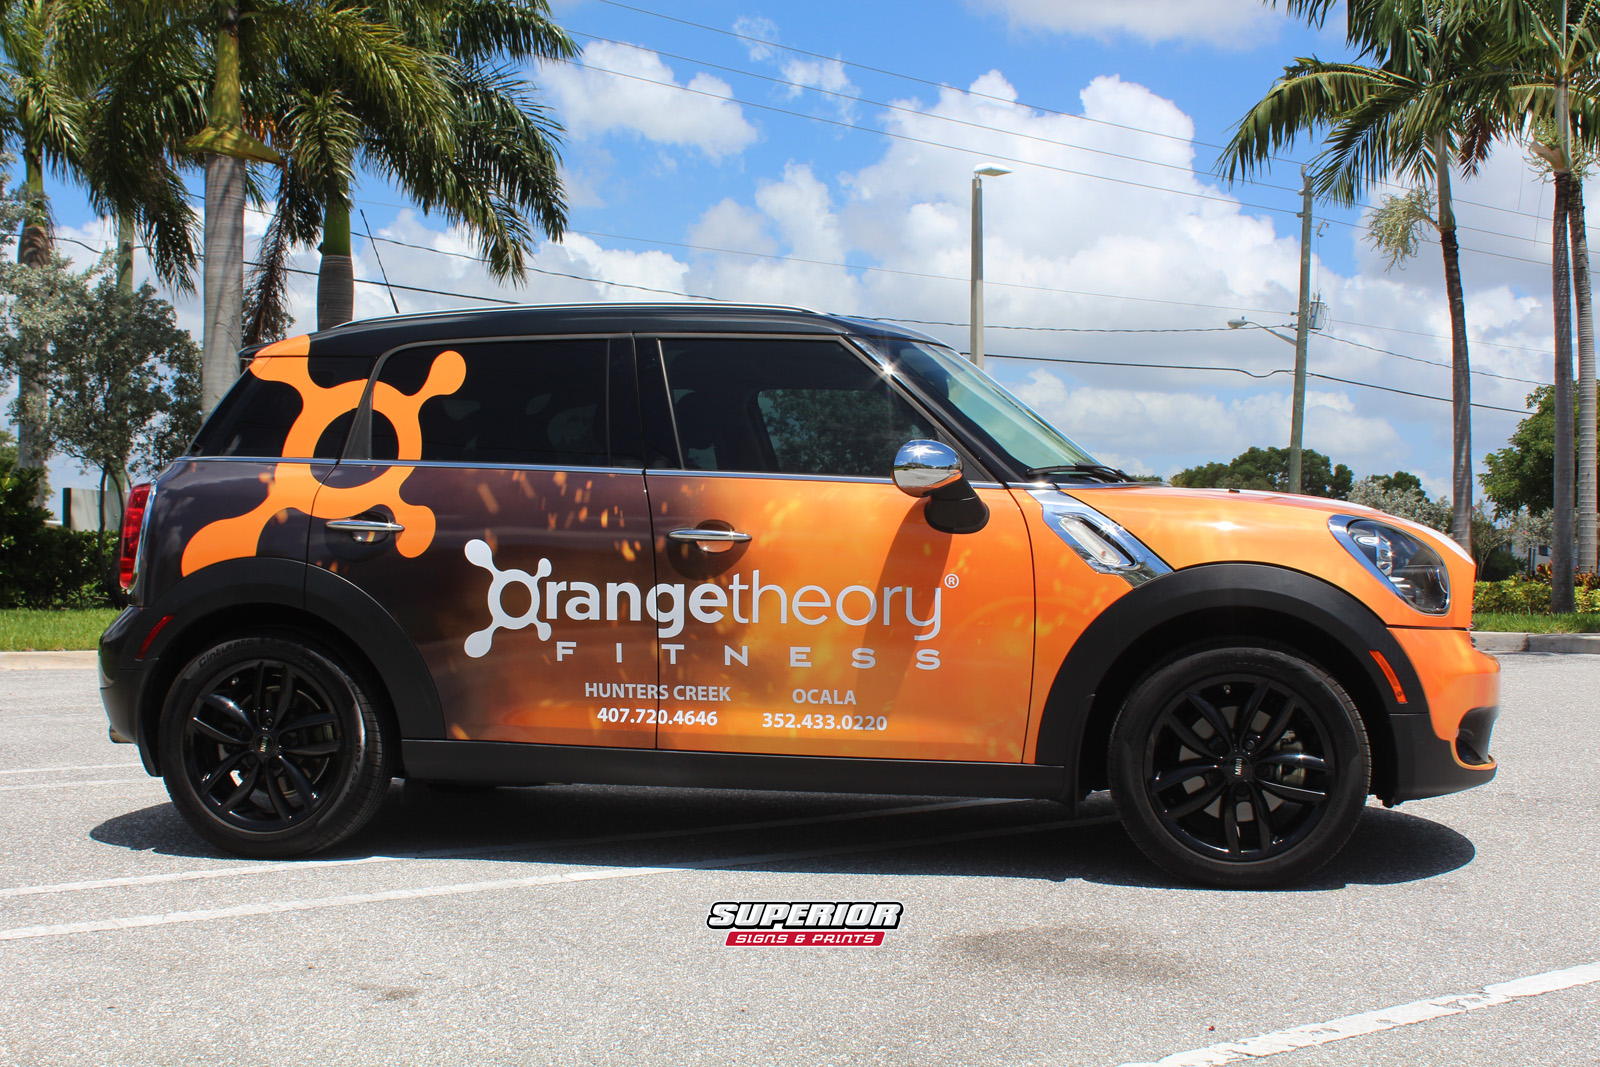 Car Wrap Vinyl >> ORANGETHEORY FITNESS FRANCHISE OWNER MINI COOPER COMMERCIAL CAR WRAP HUNTERS CREEK AND OCALA ...